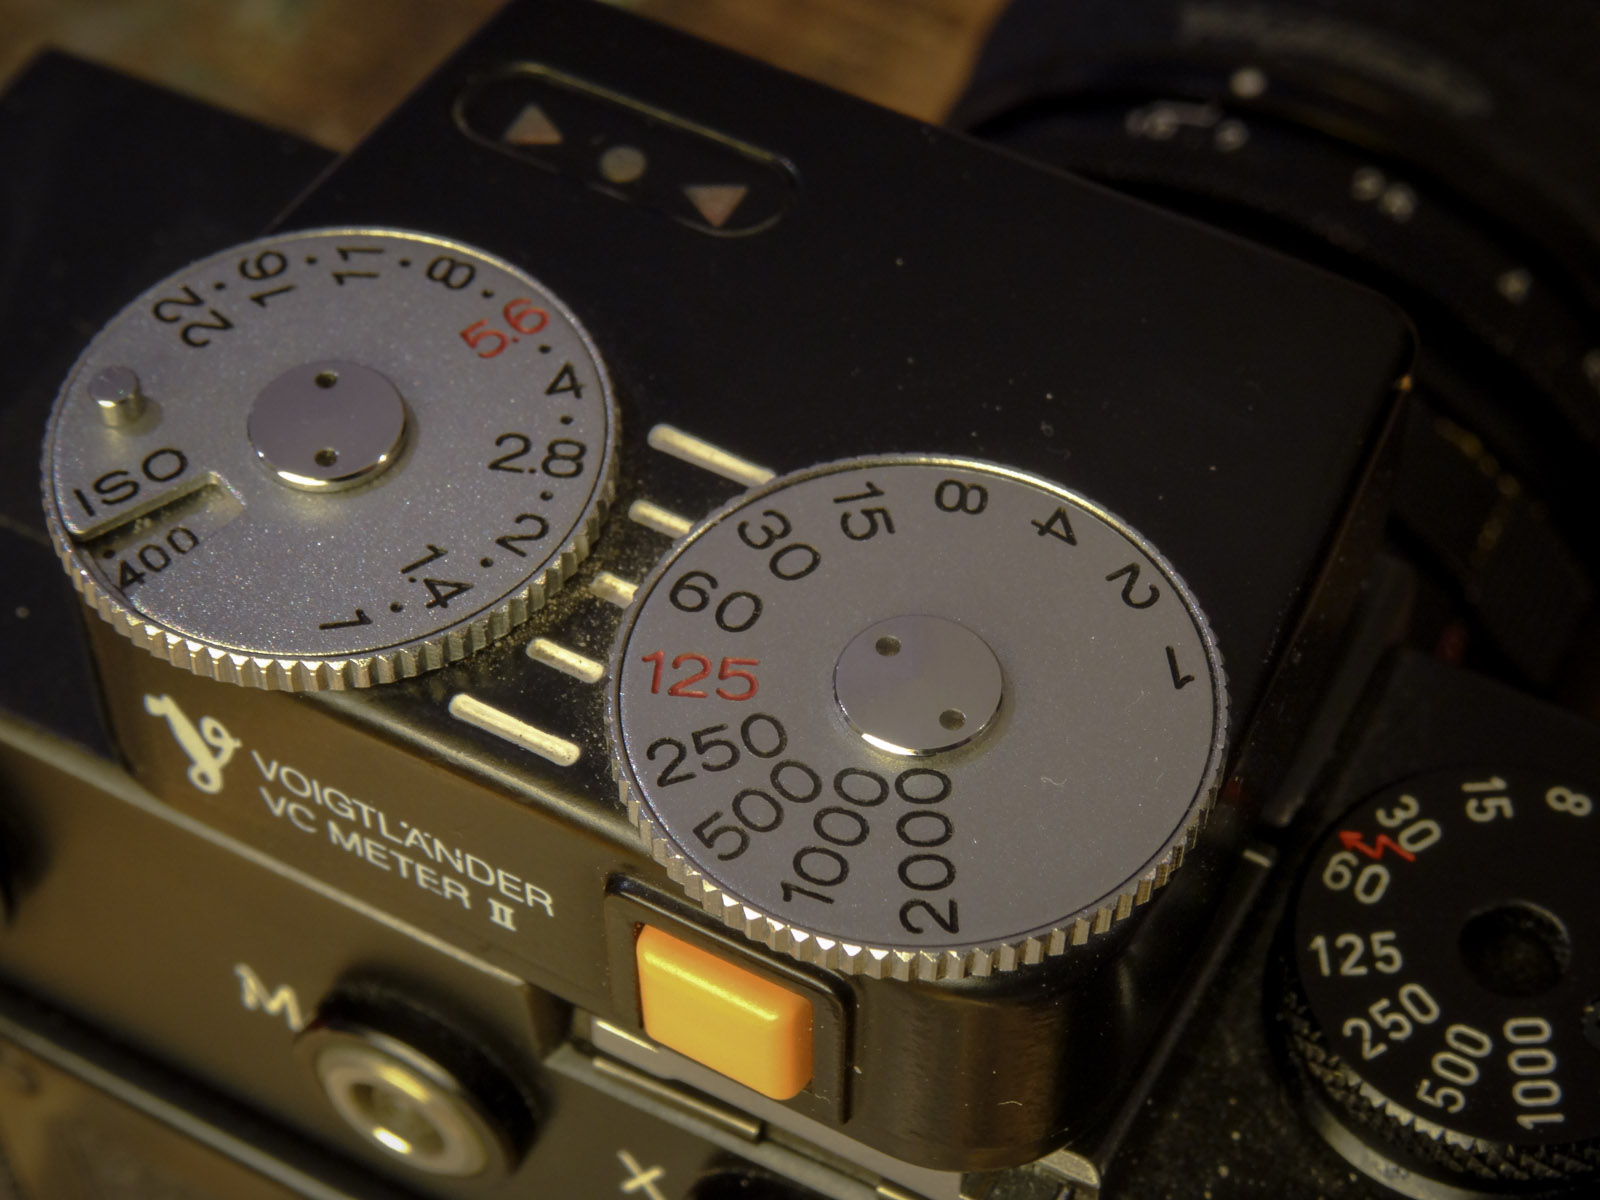 Voigtlander VCii Light Meter